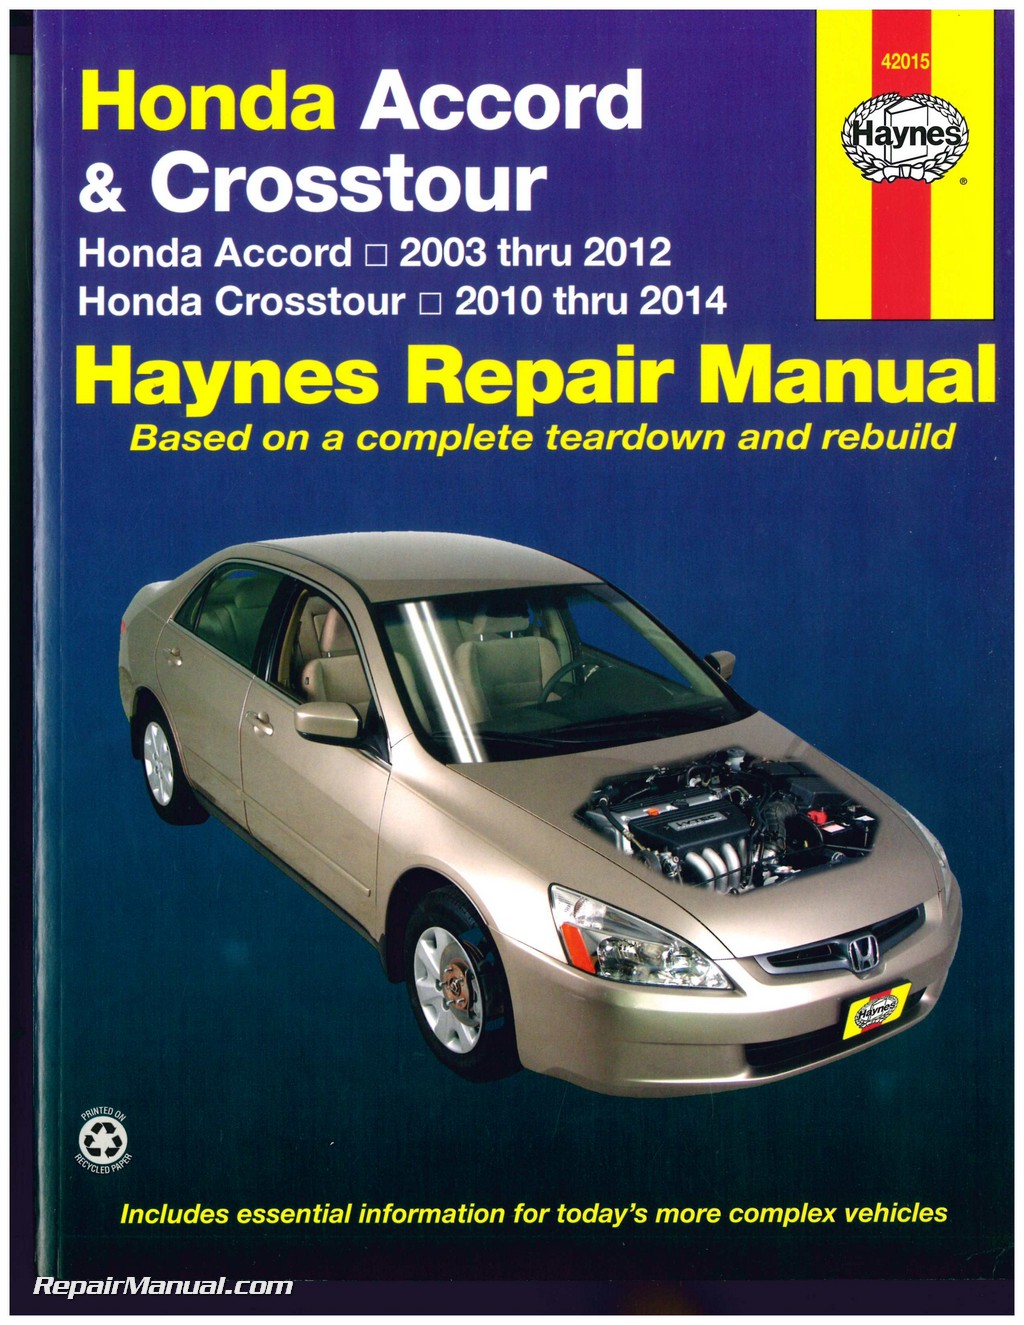 honda accord 2003 2012 crosstour 2010 2014 haynes automotive service rh repairmanual com Honda Accord Parts 91 Honda Accord Repair Manual Lights